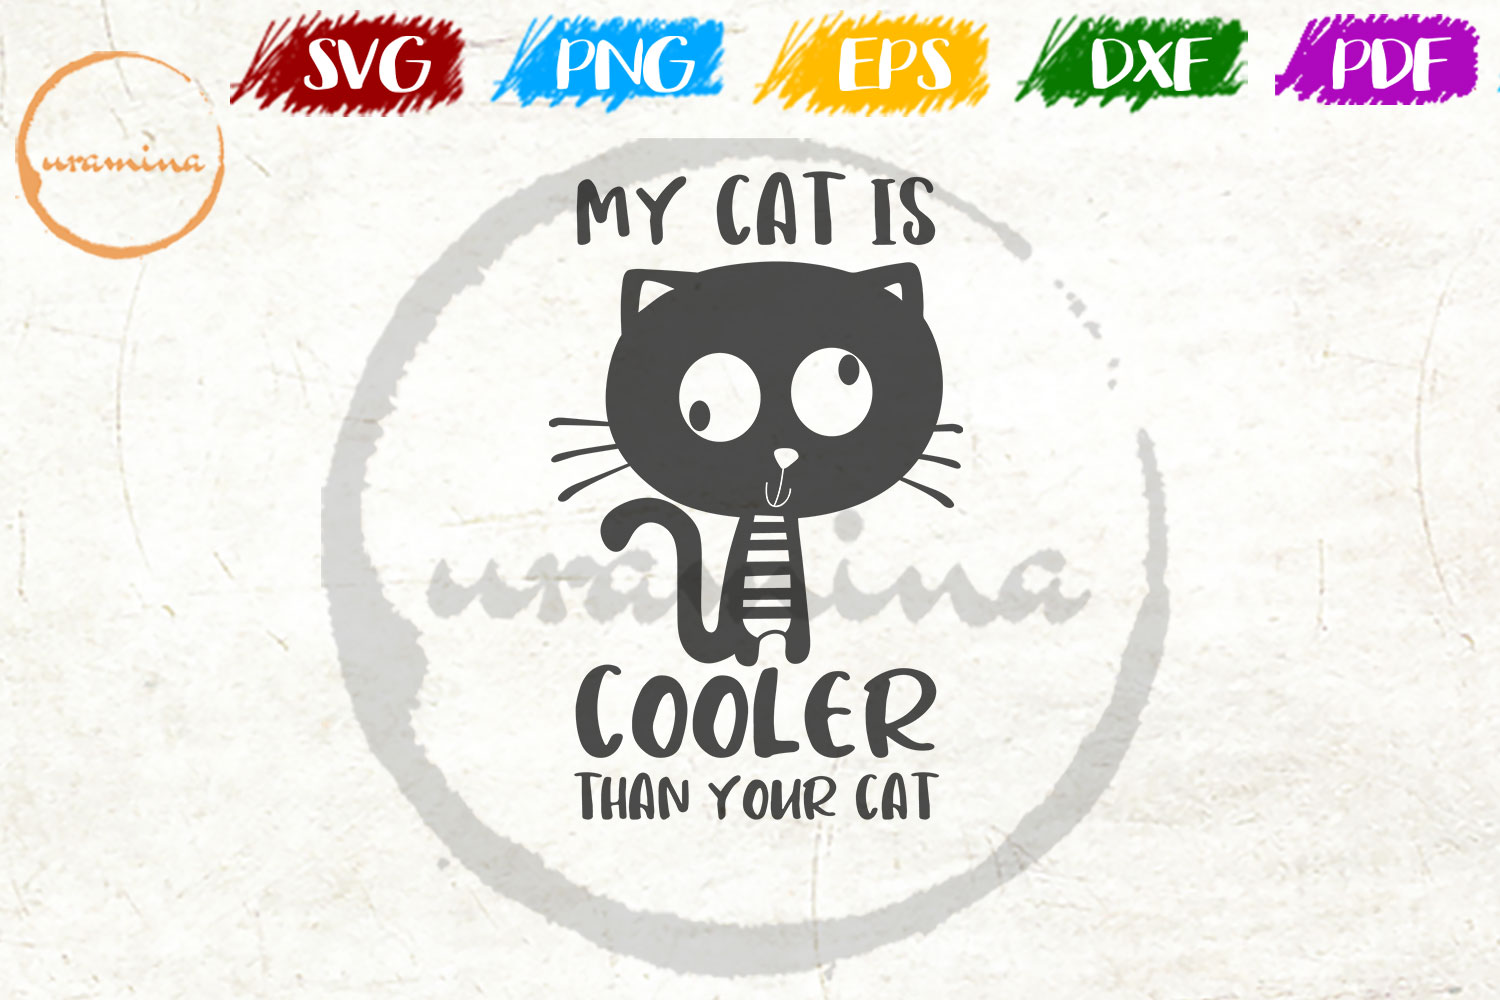 Download Free My Cat Is Cooler Than Your Cat Graphic By Uramina Creative Fabrica for Cricut Explore, Silhouette and other cutting machines.